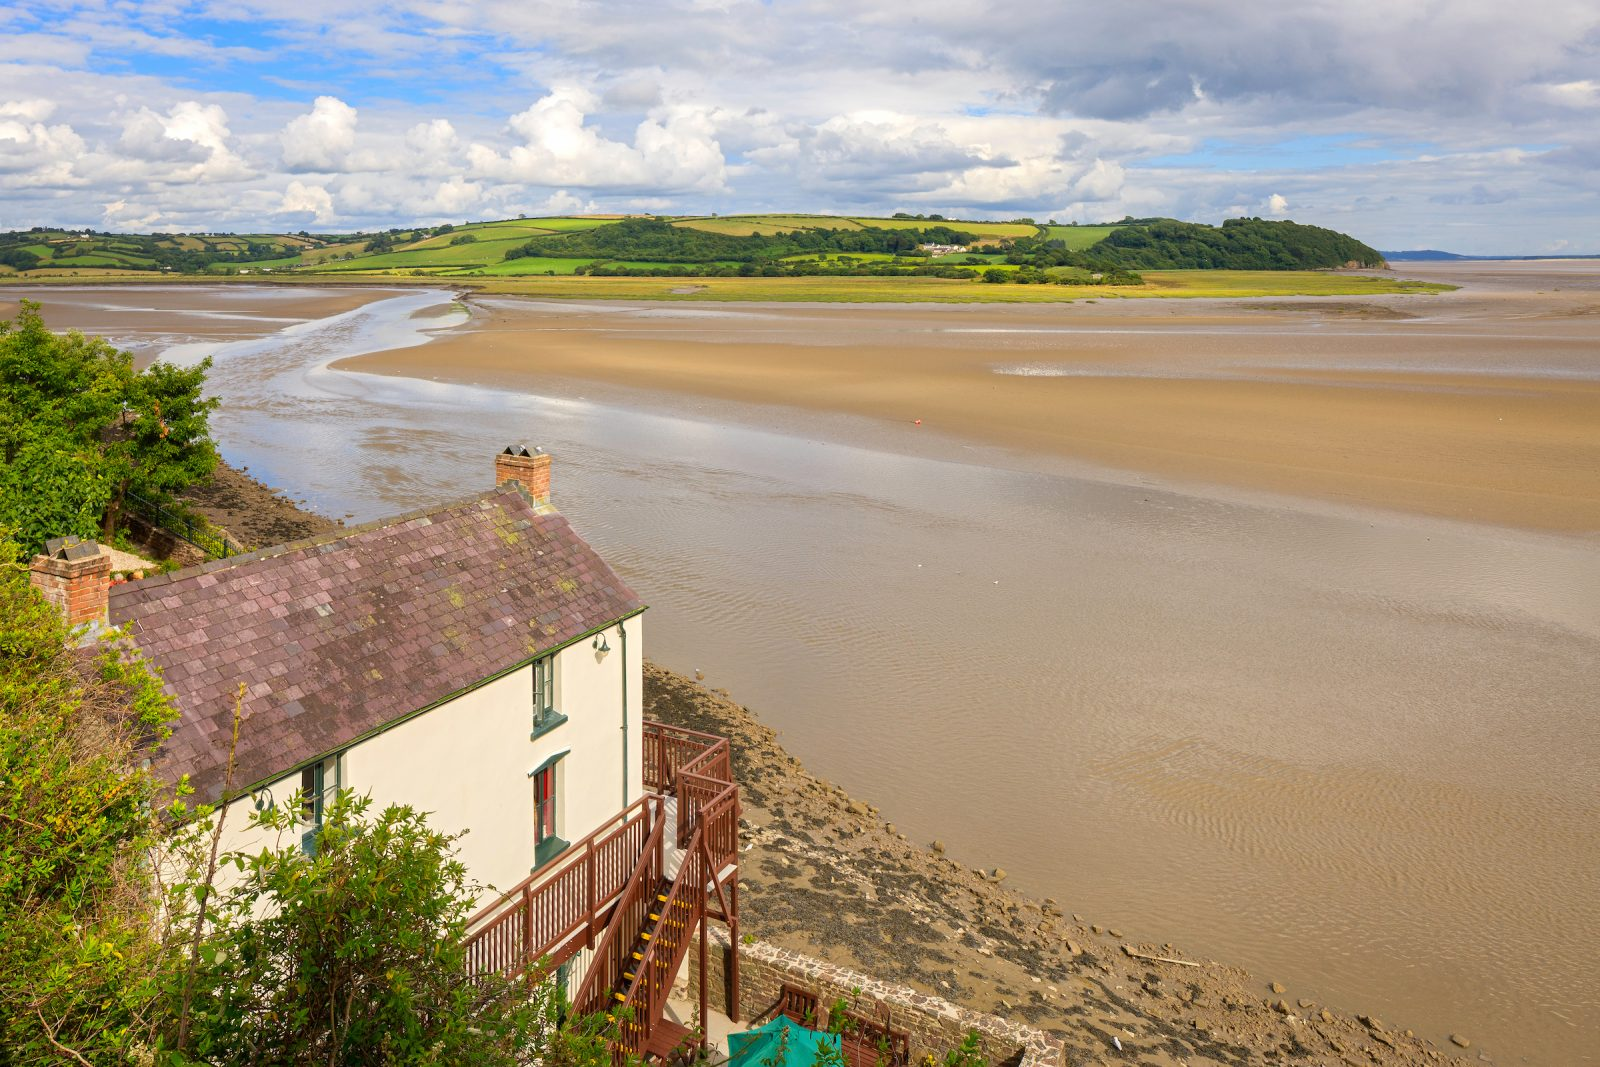 Wales Self Drive Vacations - Laugharne, Dylan Thomas' Boathouse